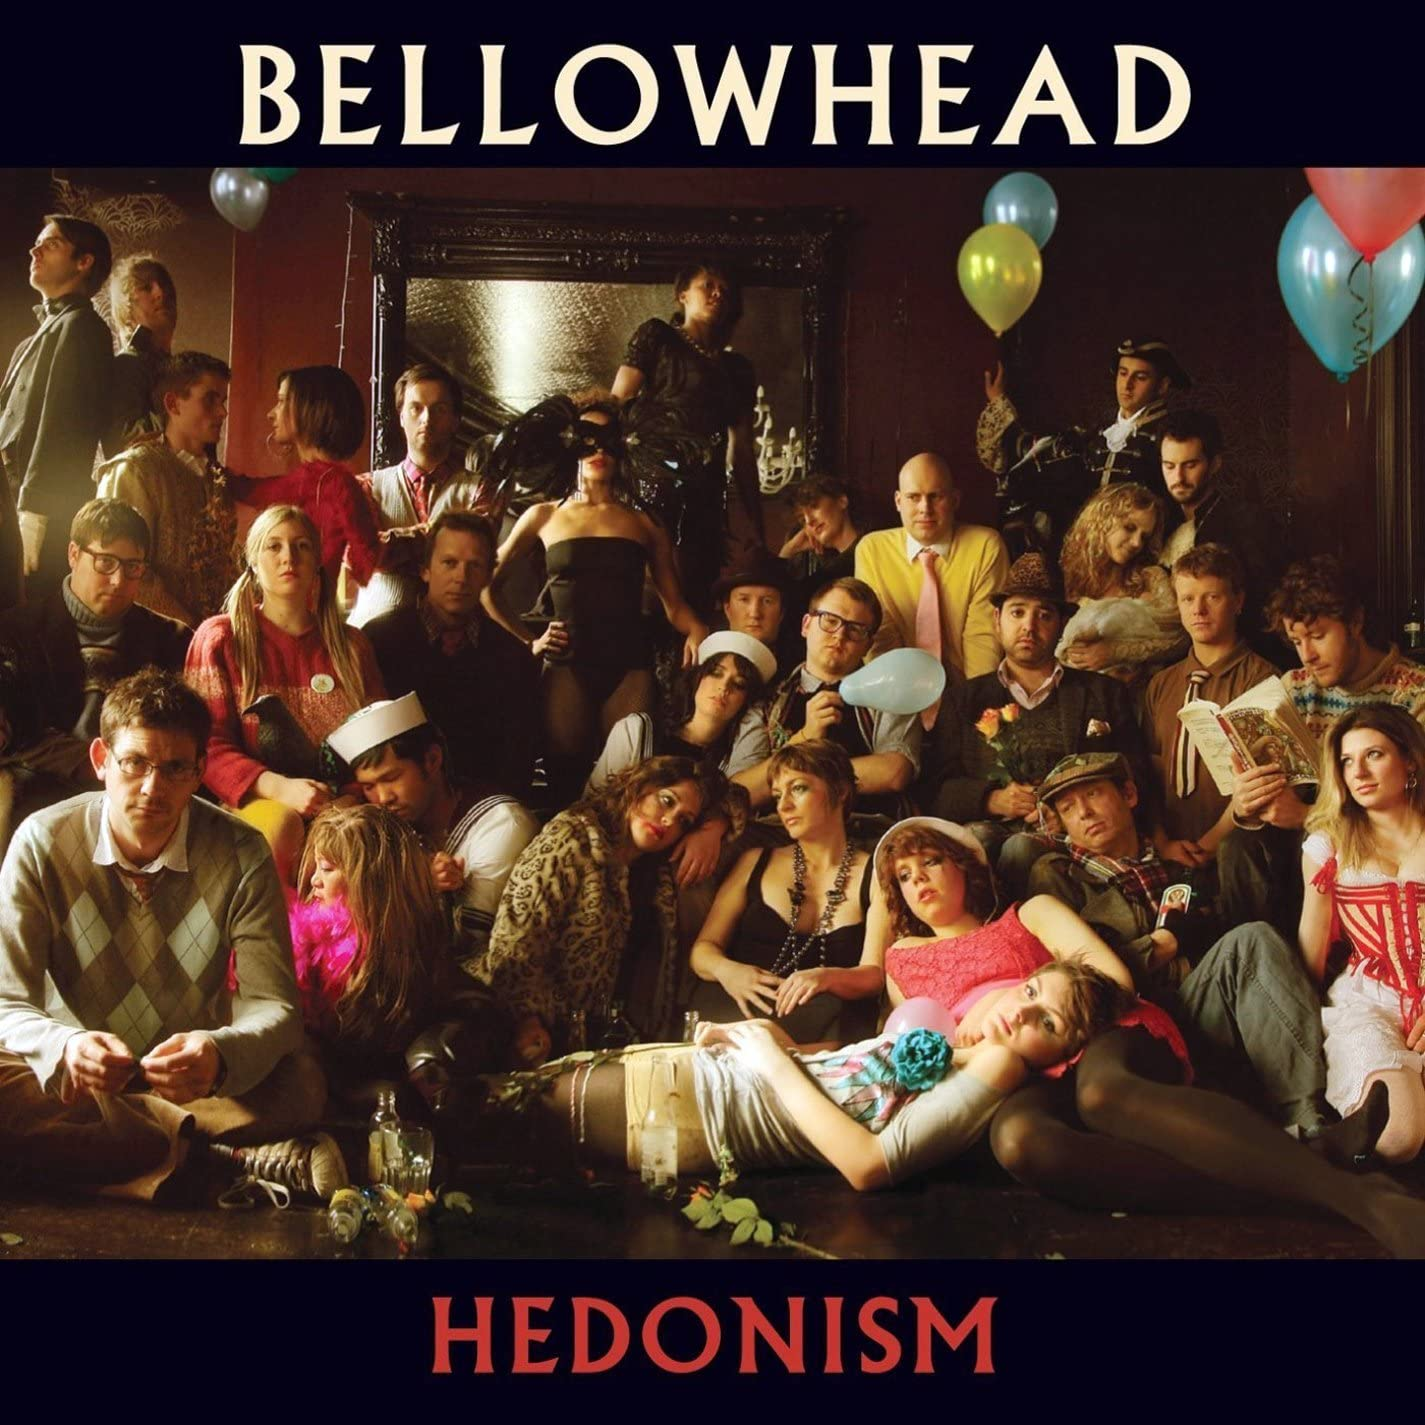 Buy Online Bellowhead - Hedonism Deluxe CD/DVD Album